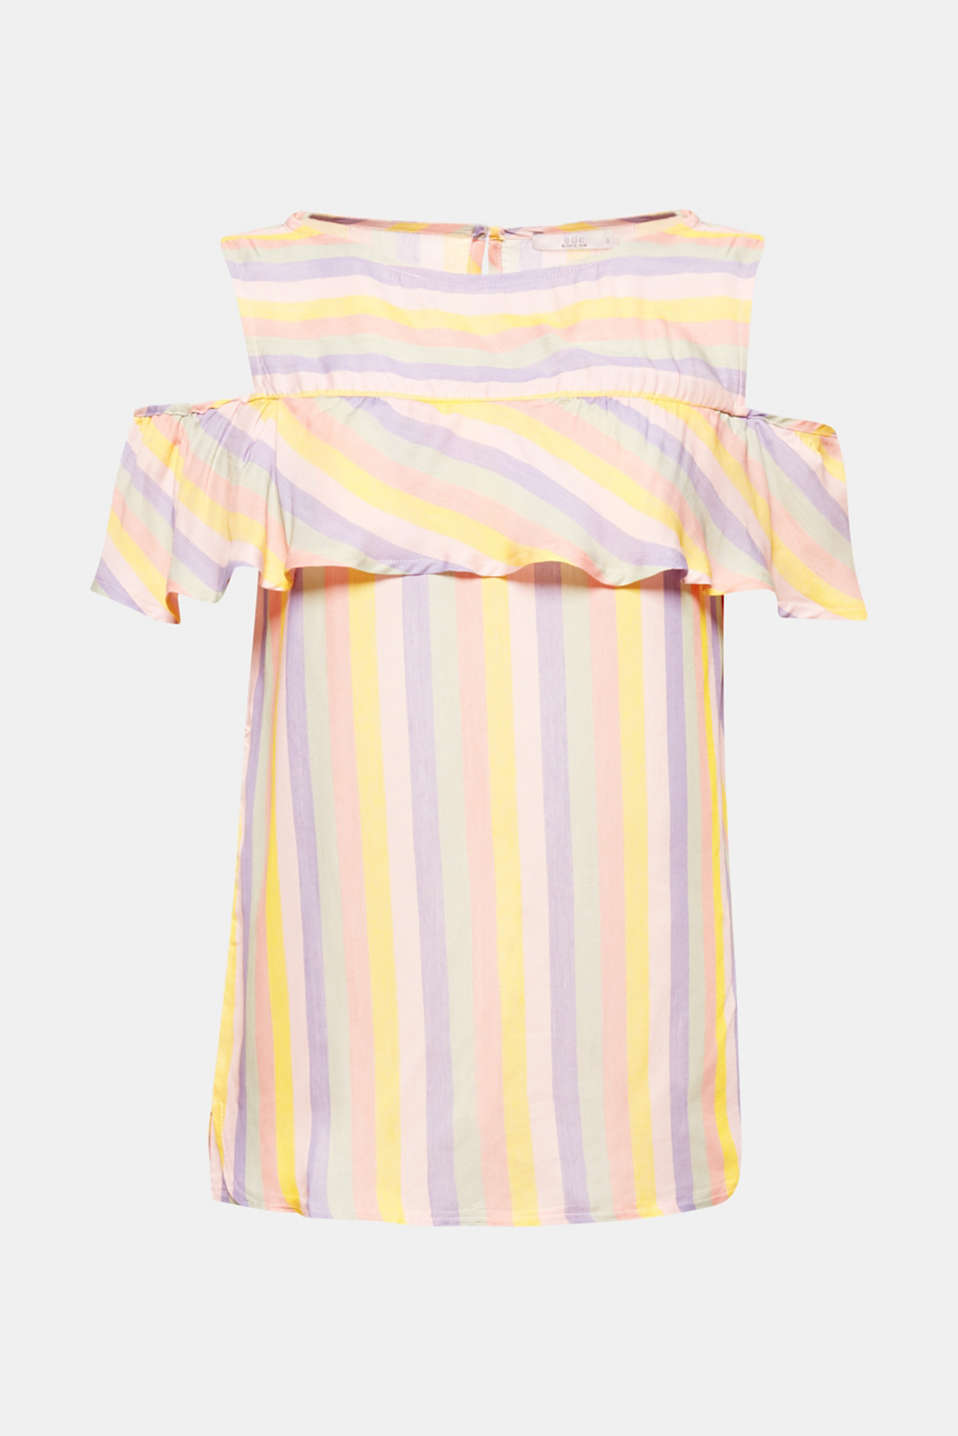 Very charming! The pretty flounce and the flowing fabric highlight the charming, fresh style of this summery, striped cold-shoulder blouse.